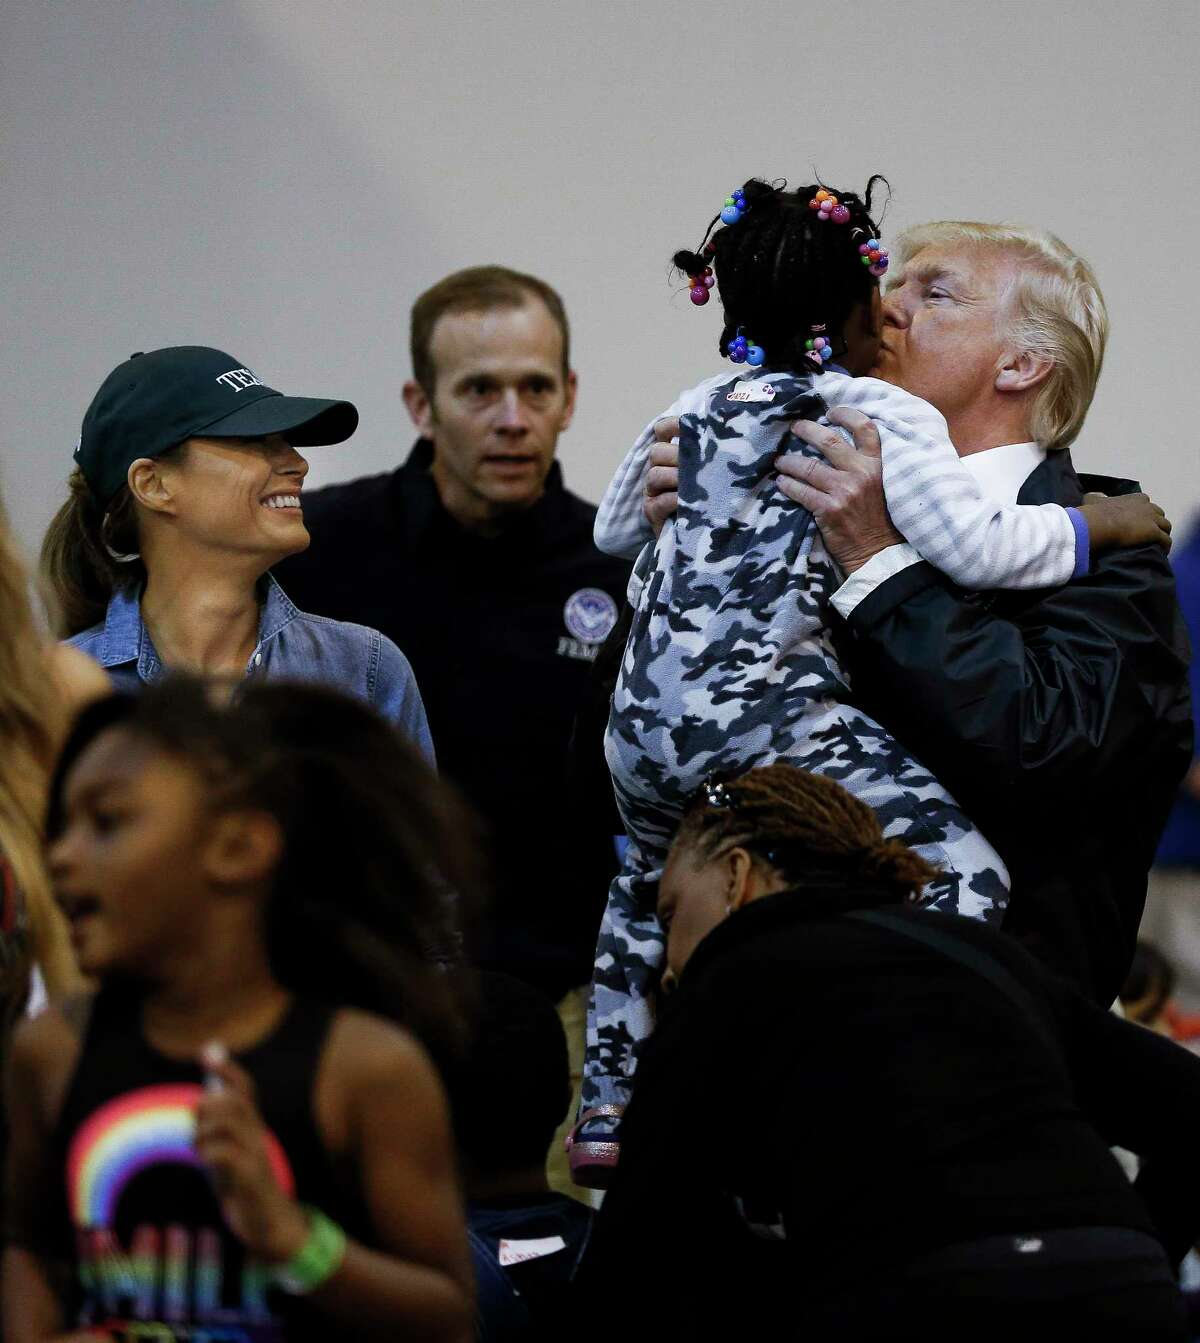 President Donald Trump kisses a child while visiting Tropical Storm Harvey evacuees at NRG Center with his wife, Melania.